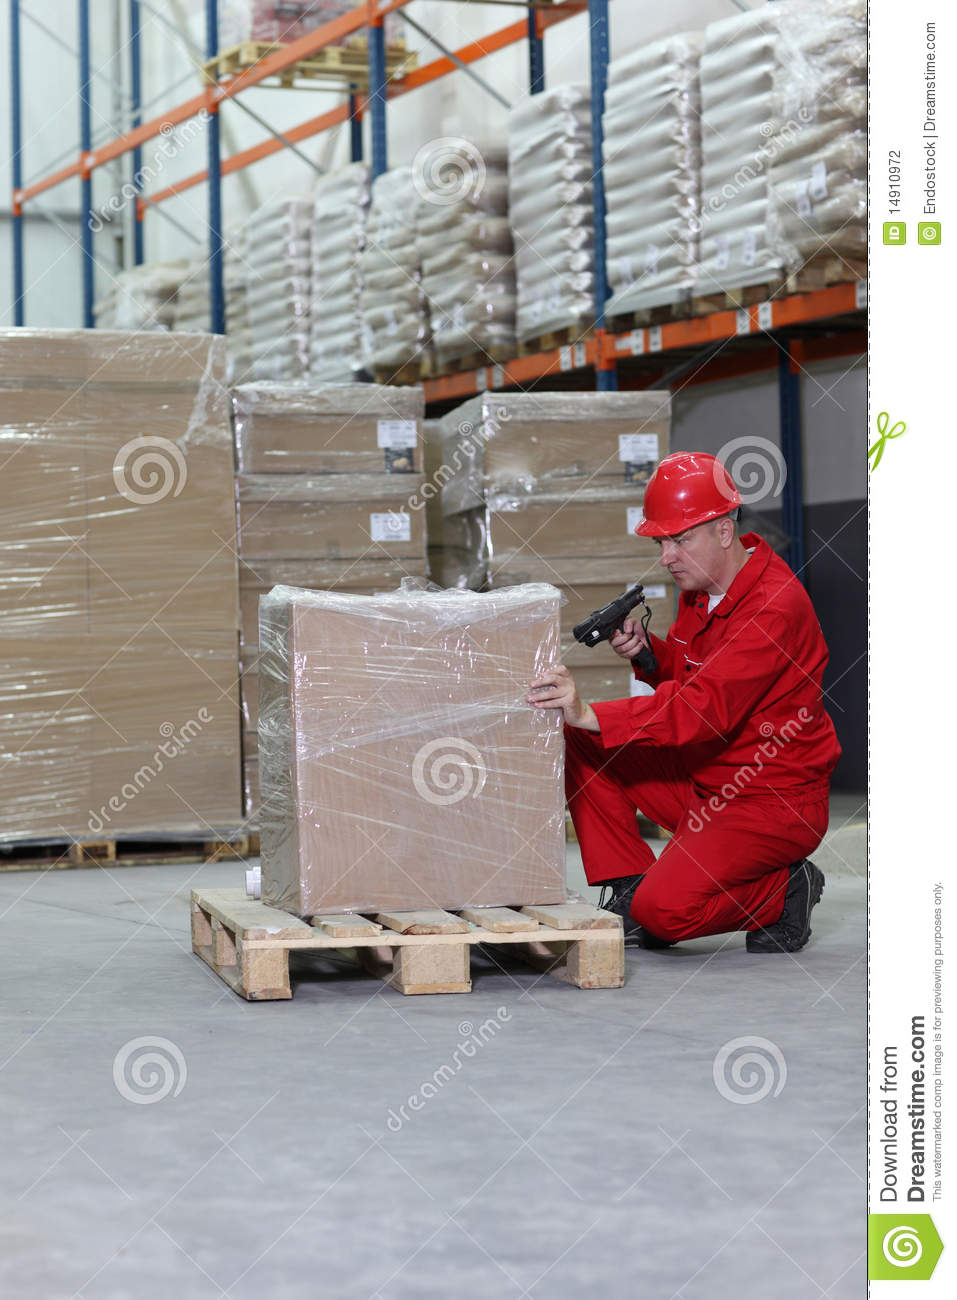 Worker with bar code reader working in warehouse